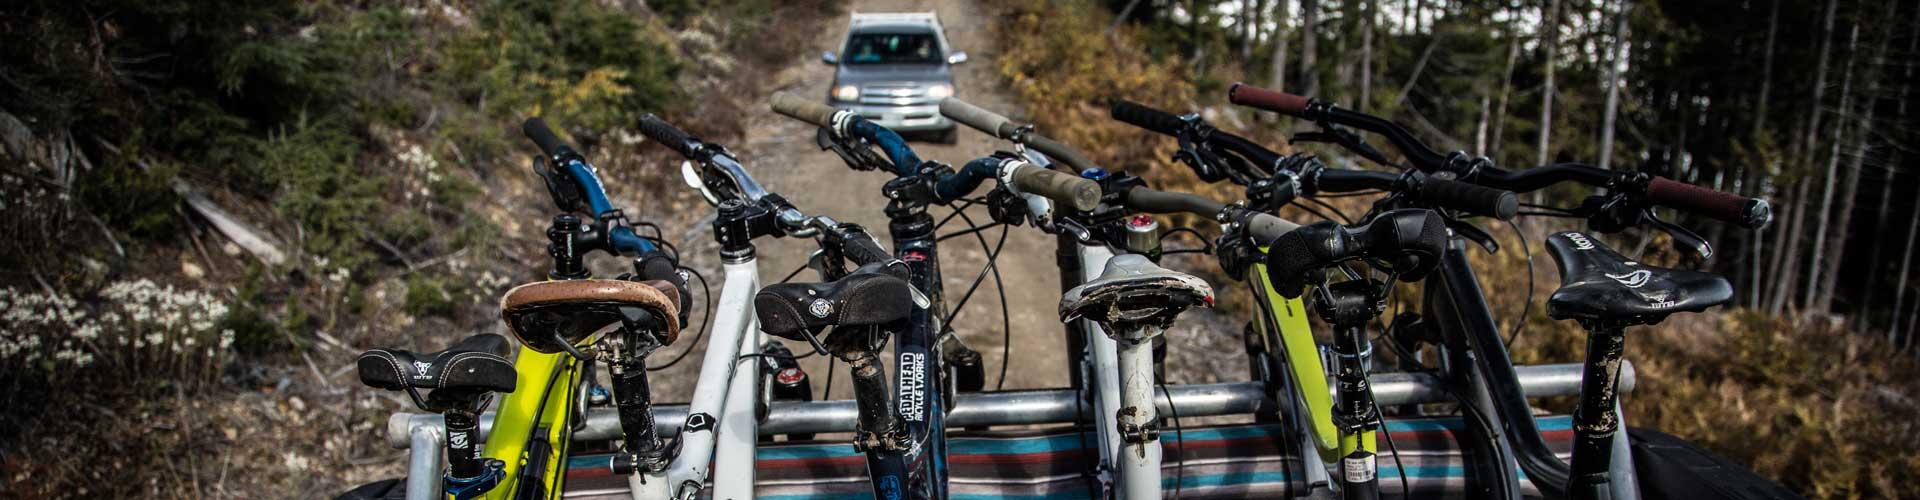 Shuttling loaded with mountain bikes